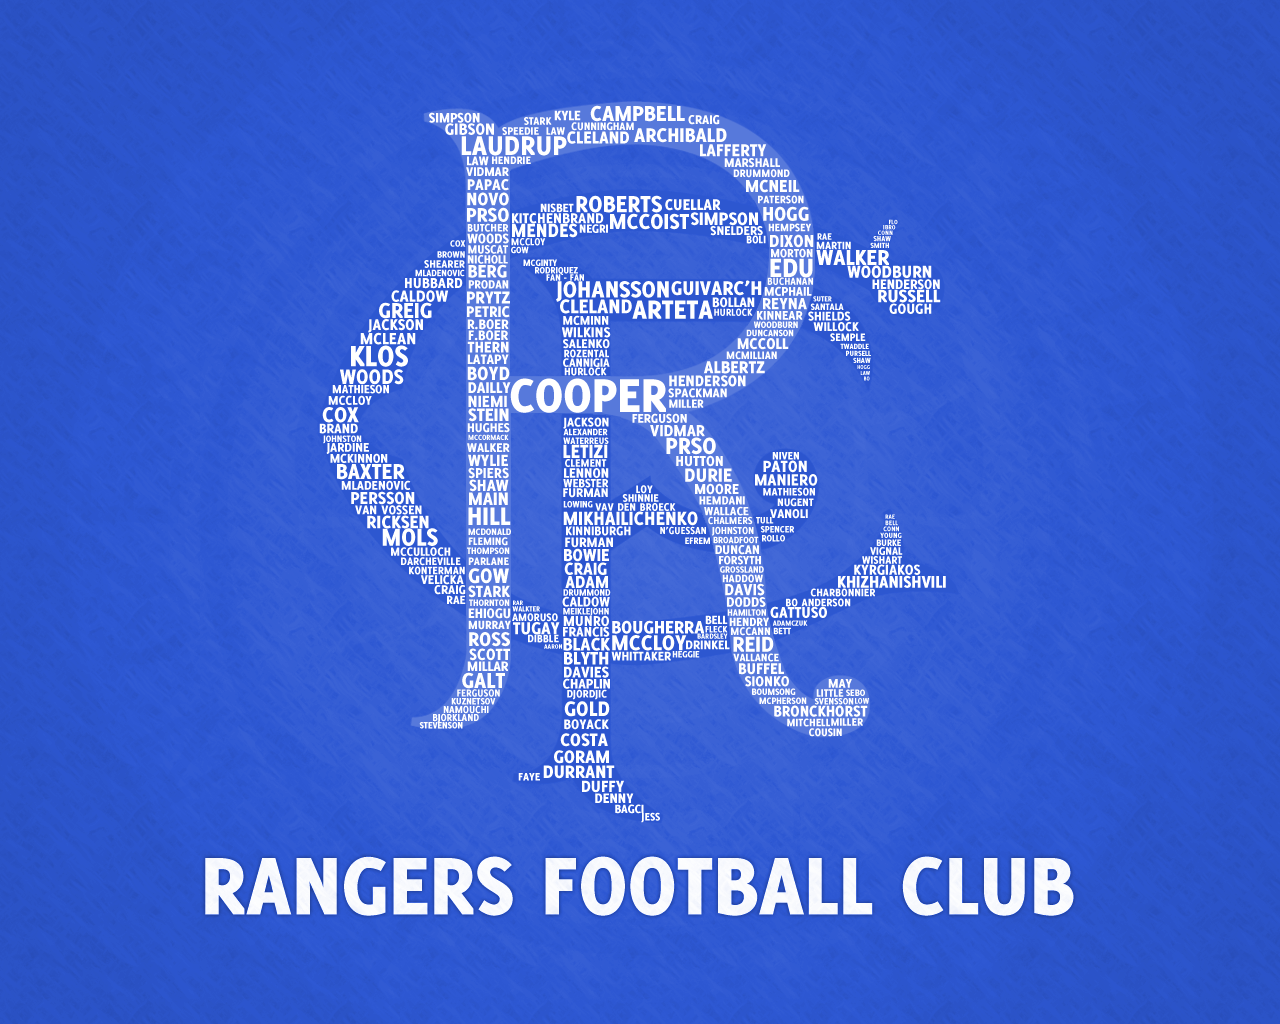 #39847889 Rangers Wallpaper for PC, Mobile